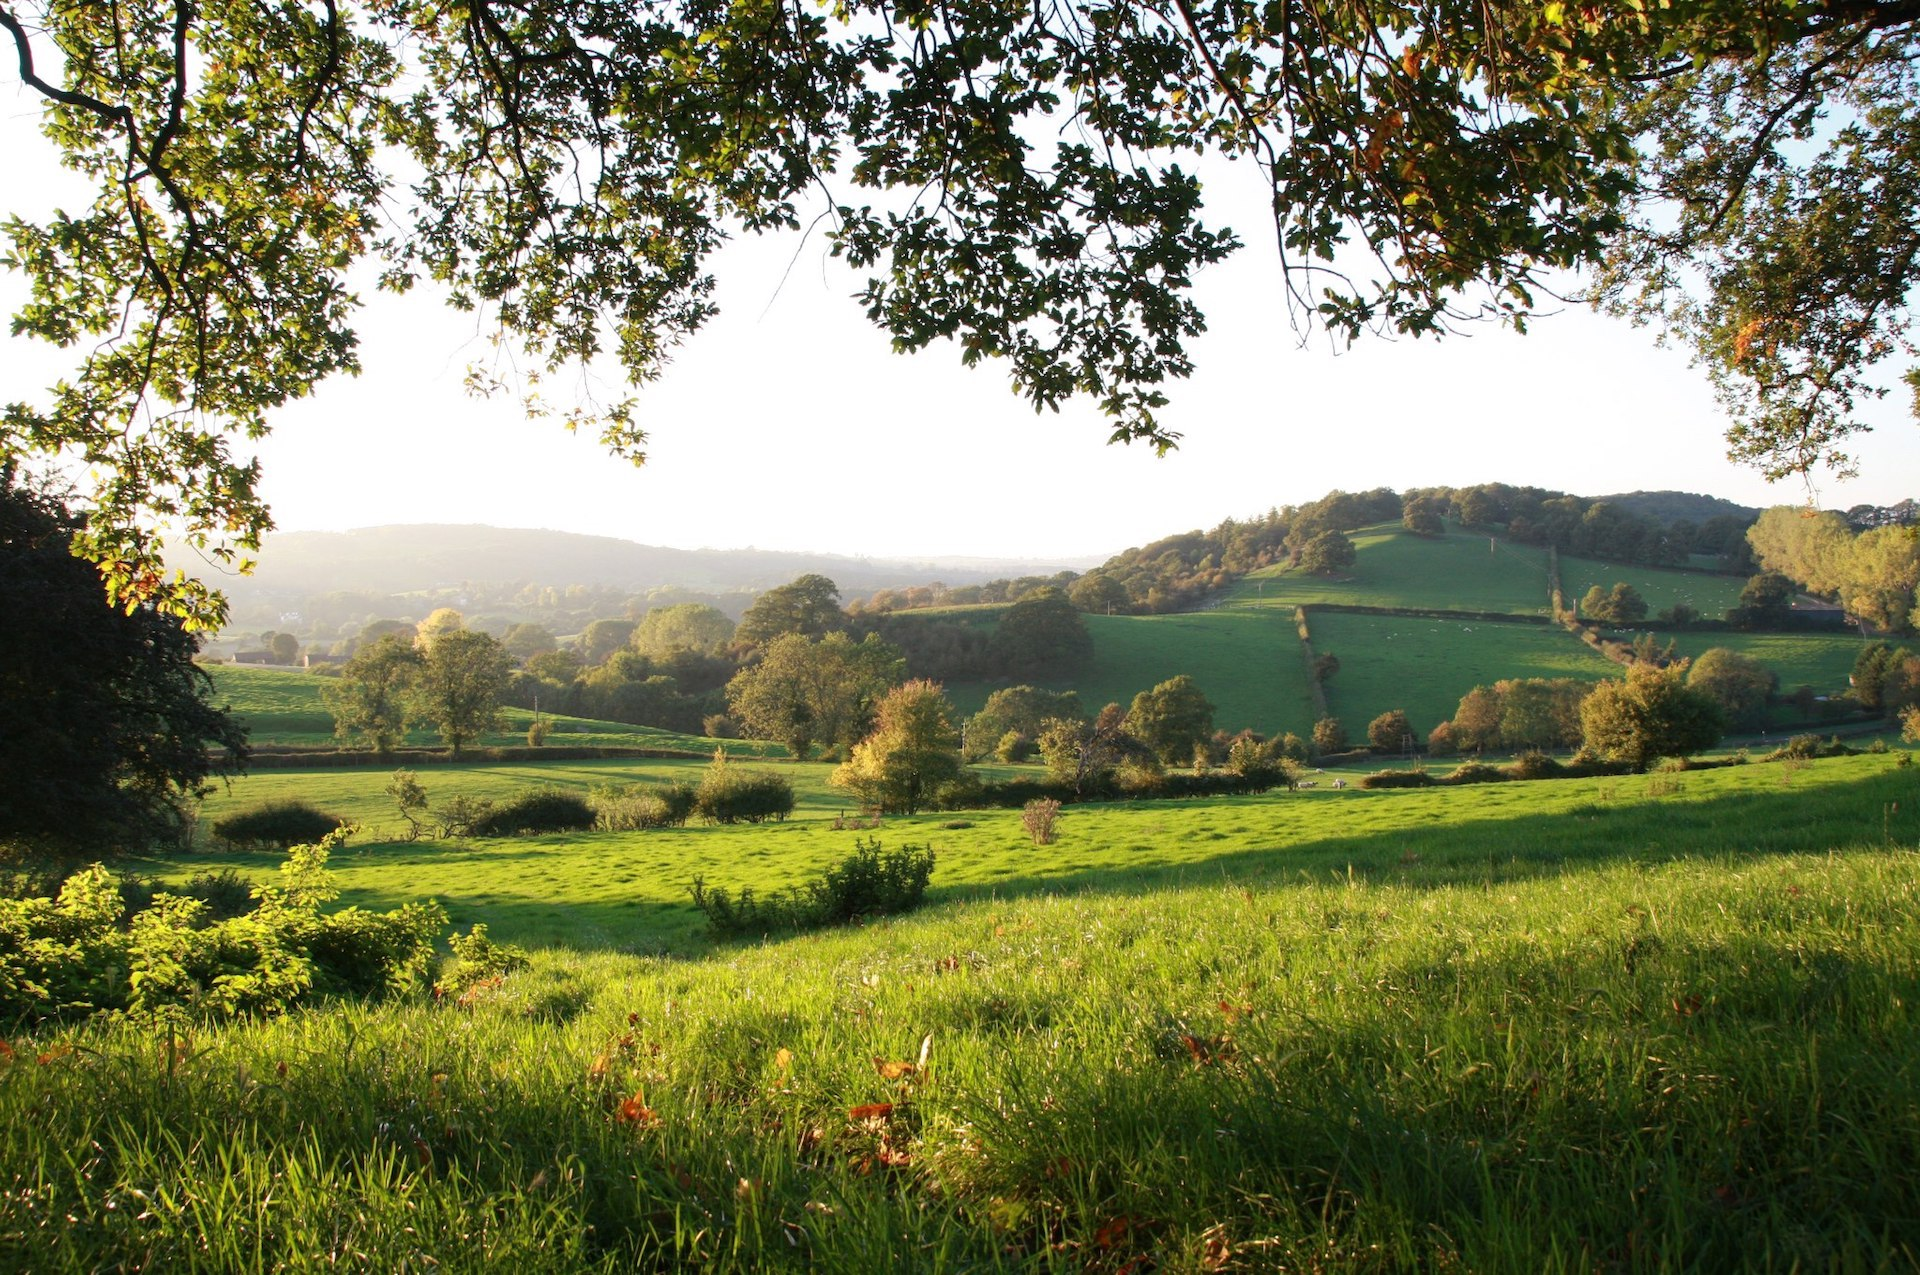 Locality - Herefordshire